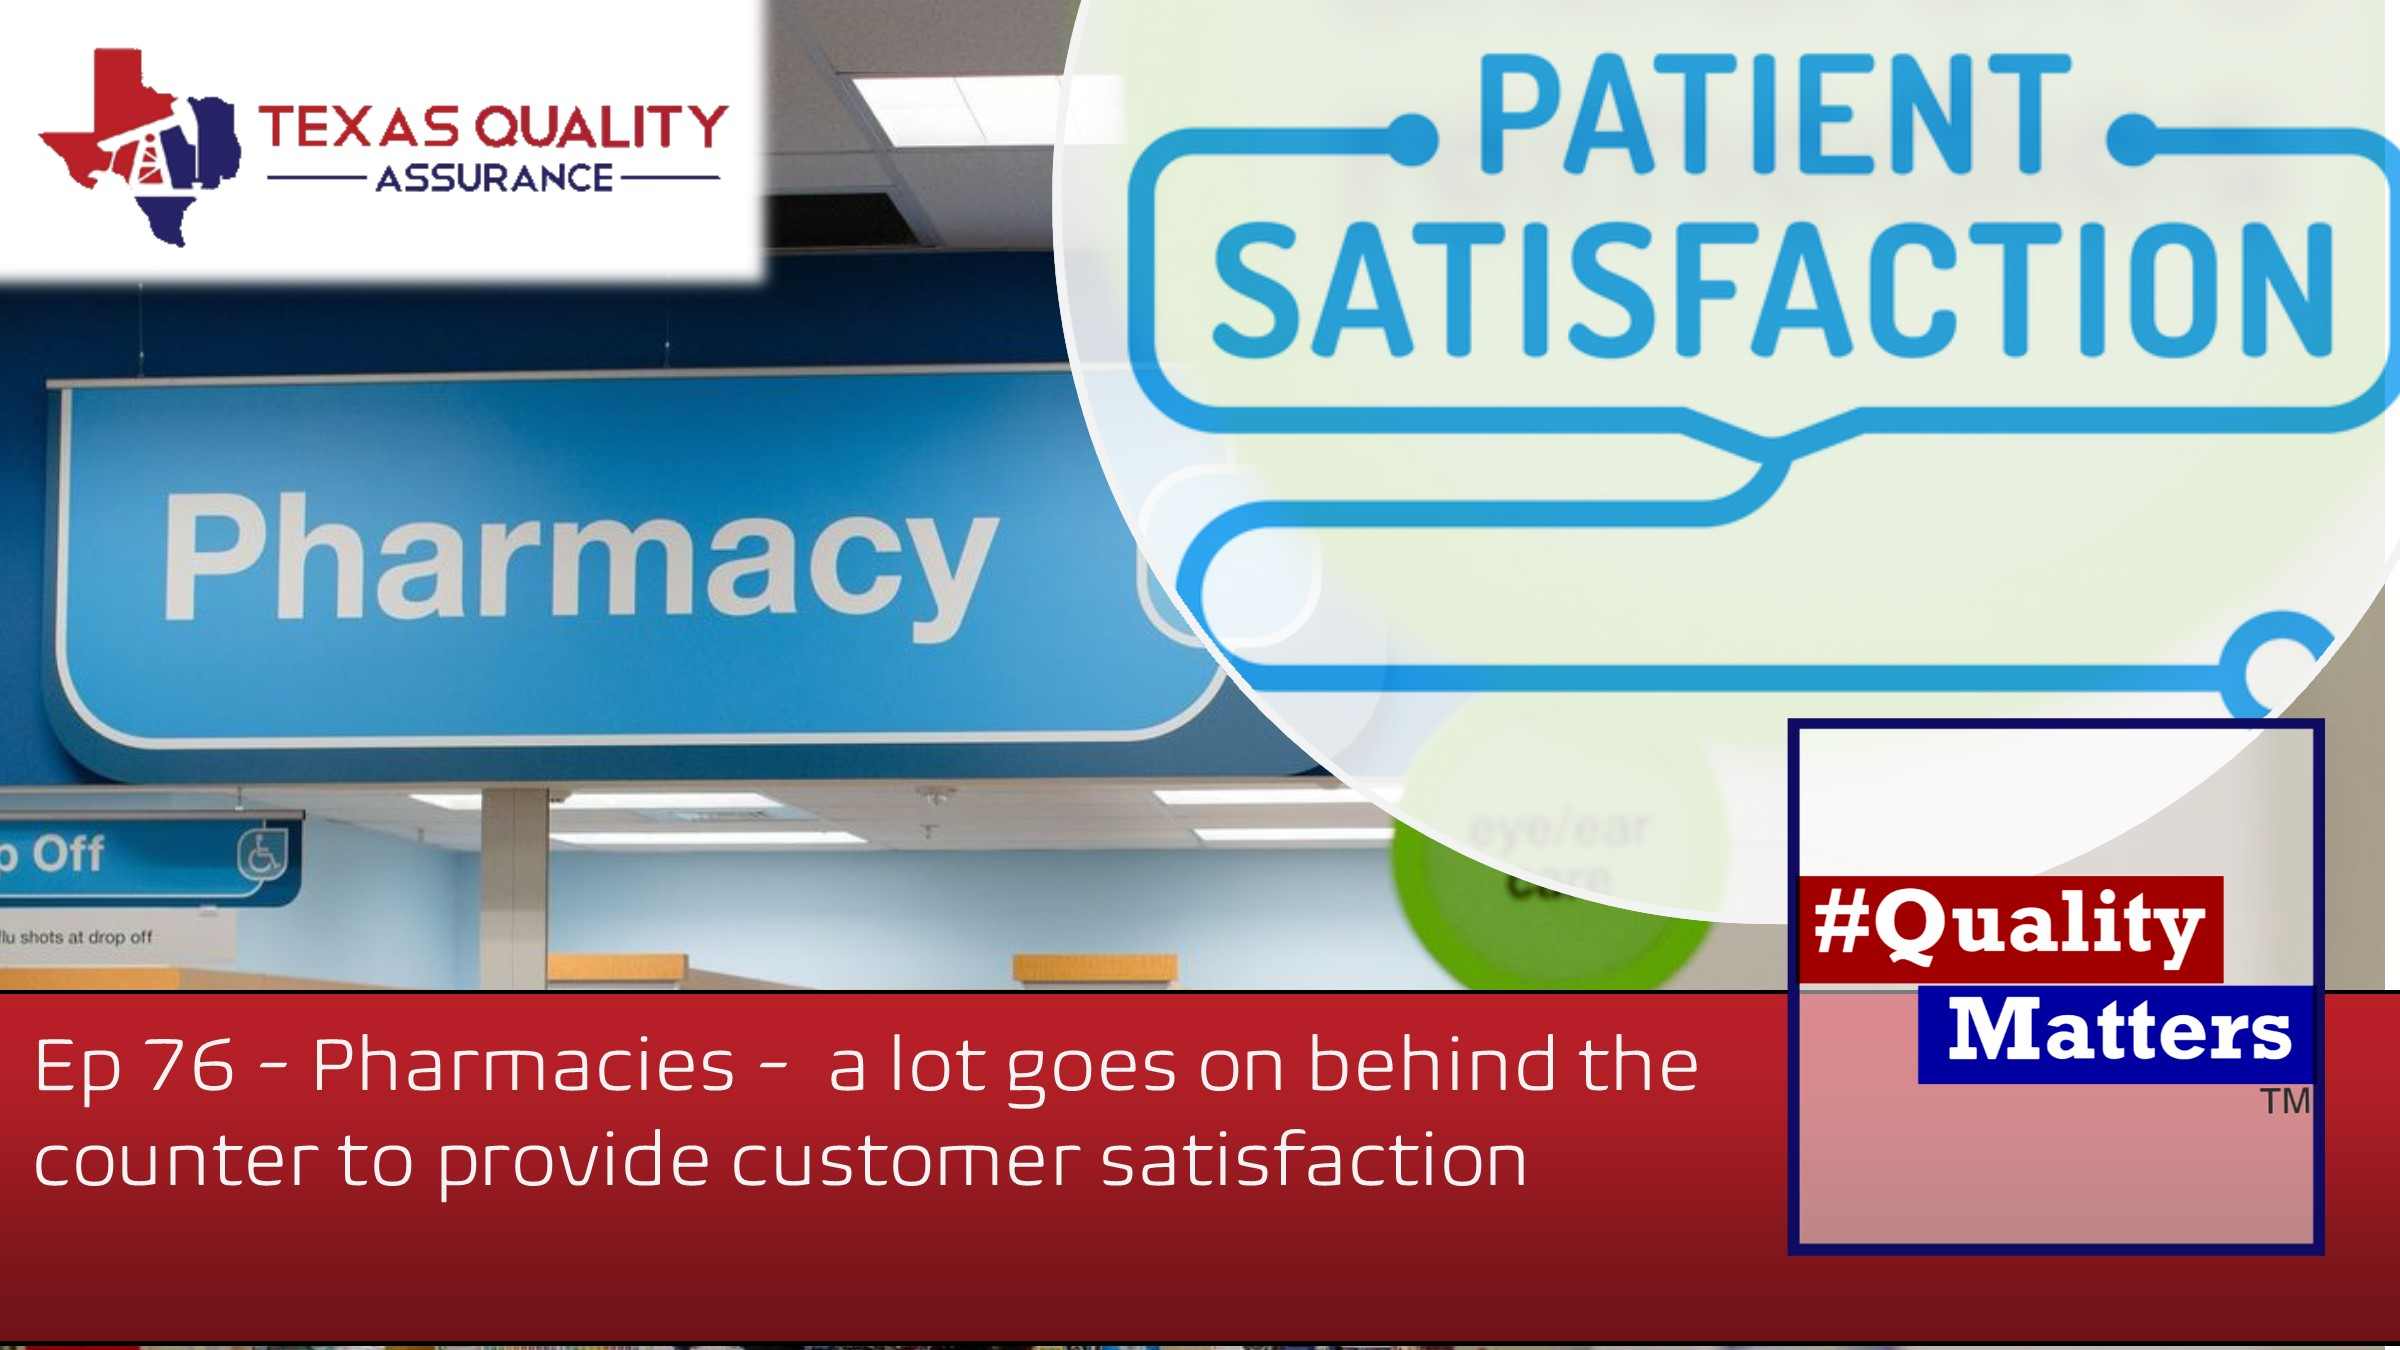 Ep 76 – Pharmacies – A lot goes on behind the counter providing customer satisfaction